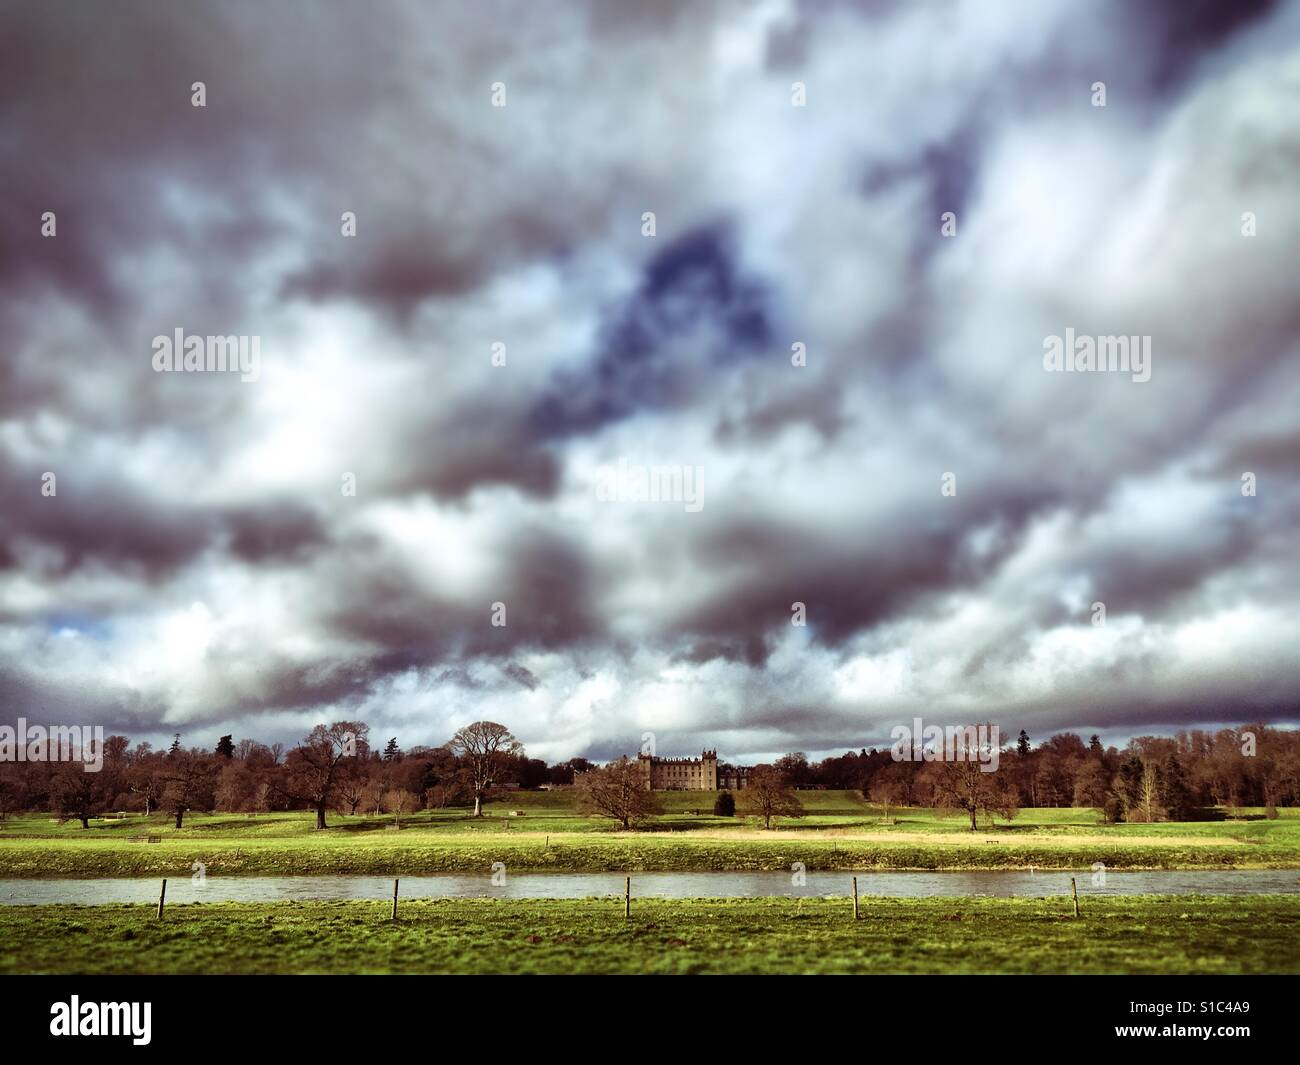 Stock Photo - The River Tweed and the estate of Floors Castle, the home of